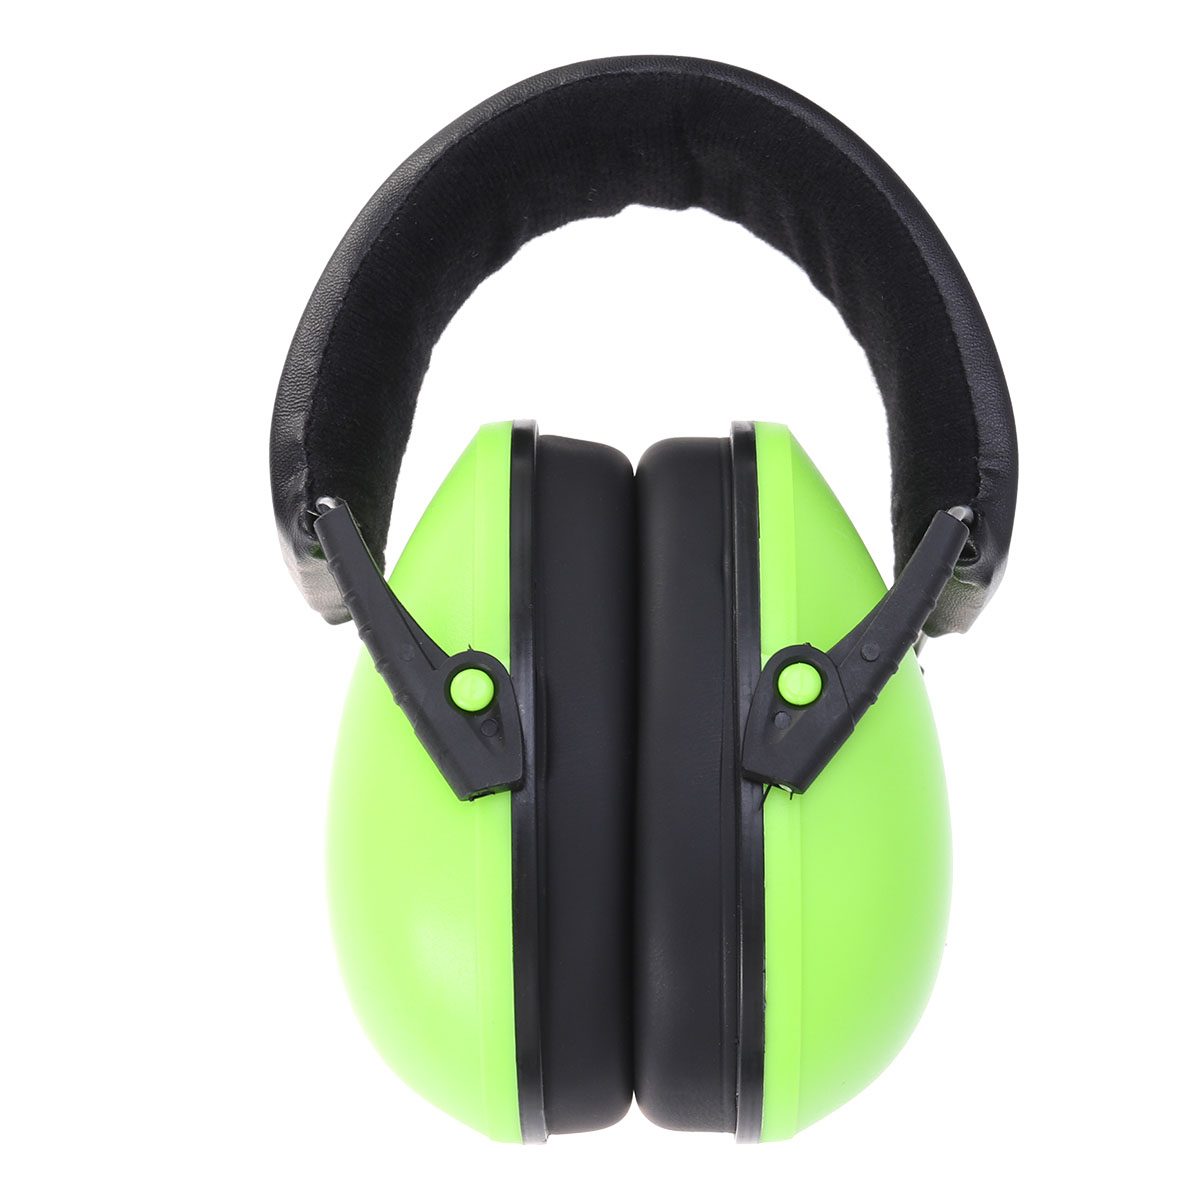 Baby Hearing Protection Earmuff Noise Cancelling Ear Muffs for Sleep Play Study(Green)